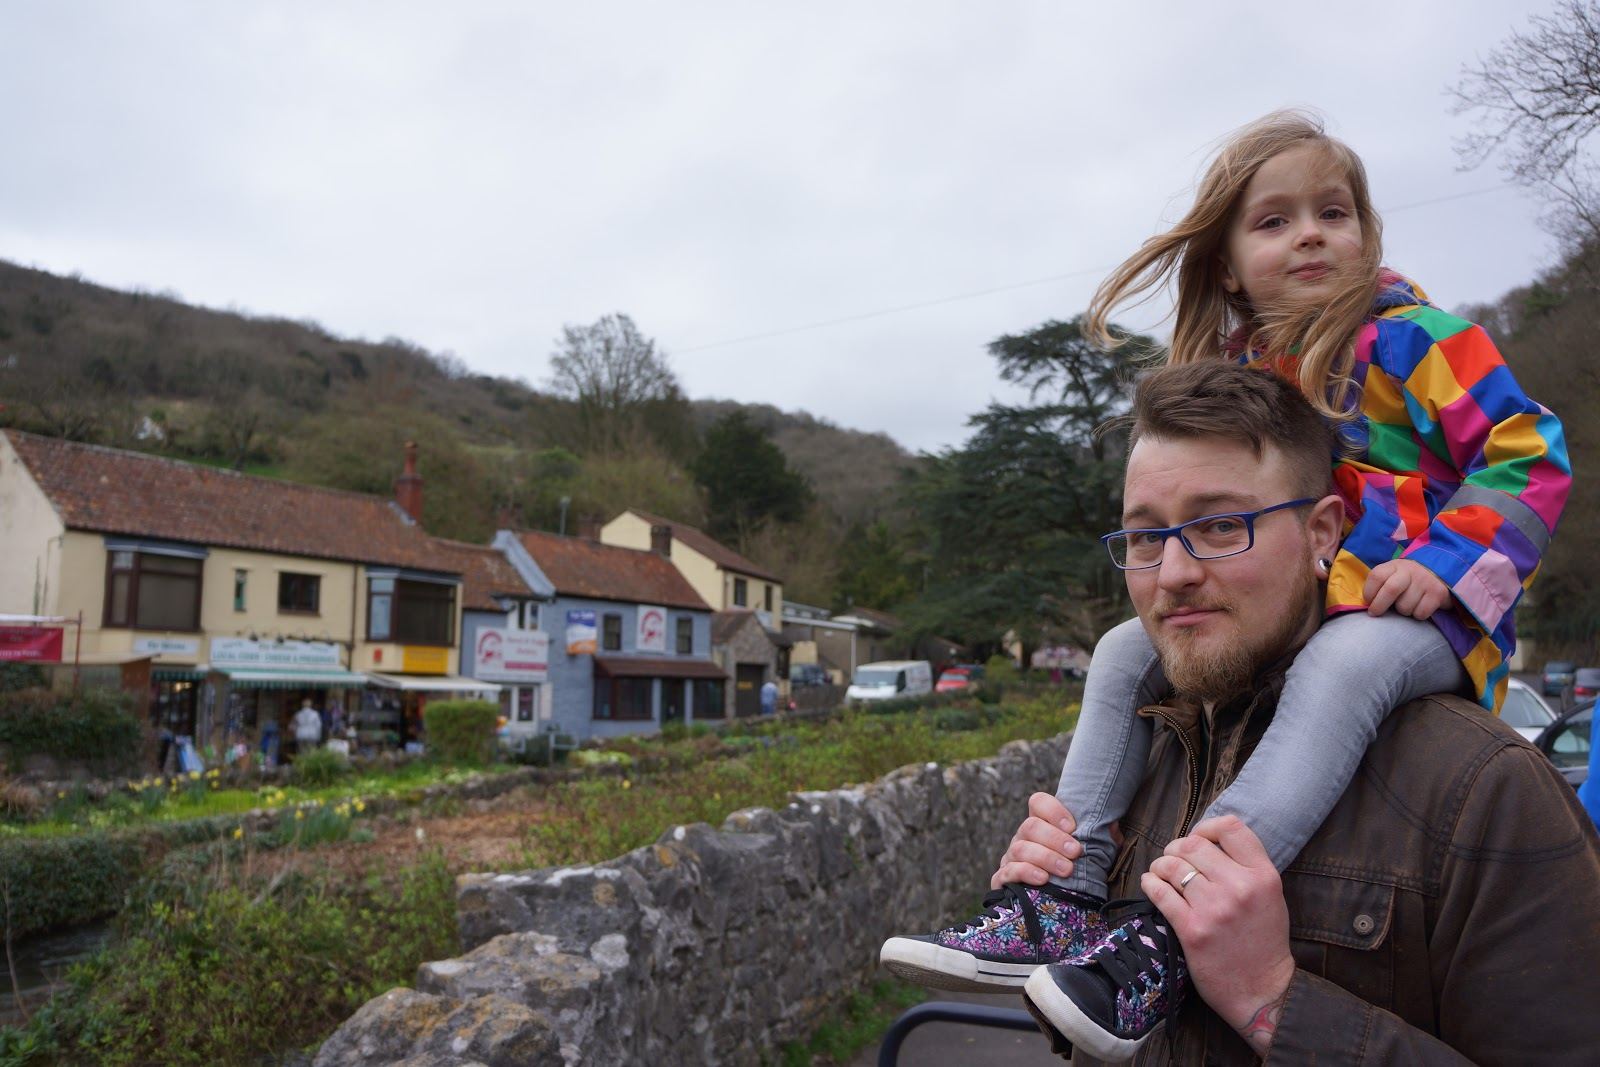 Girl on daddy's shoulders at Cheddar town